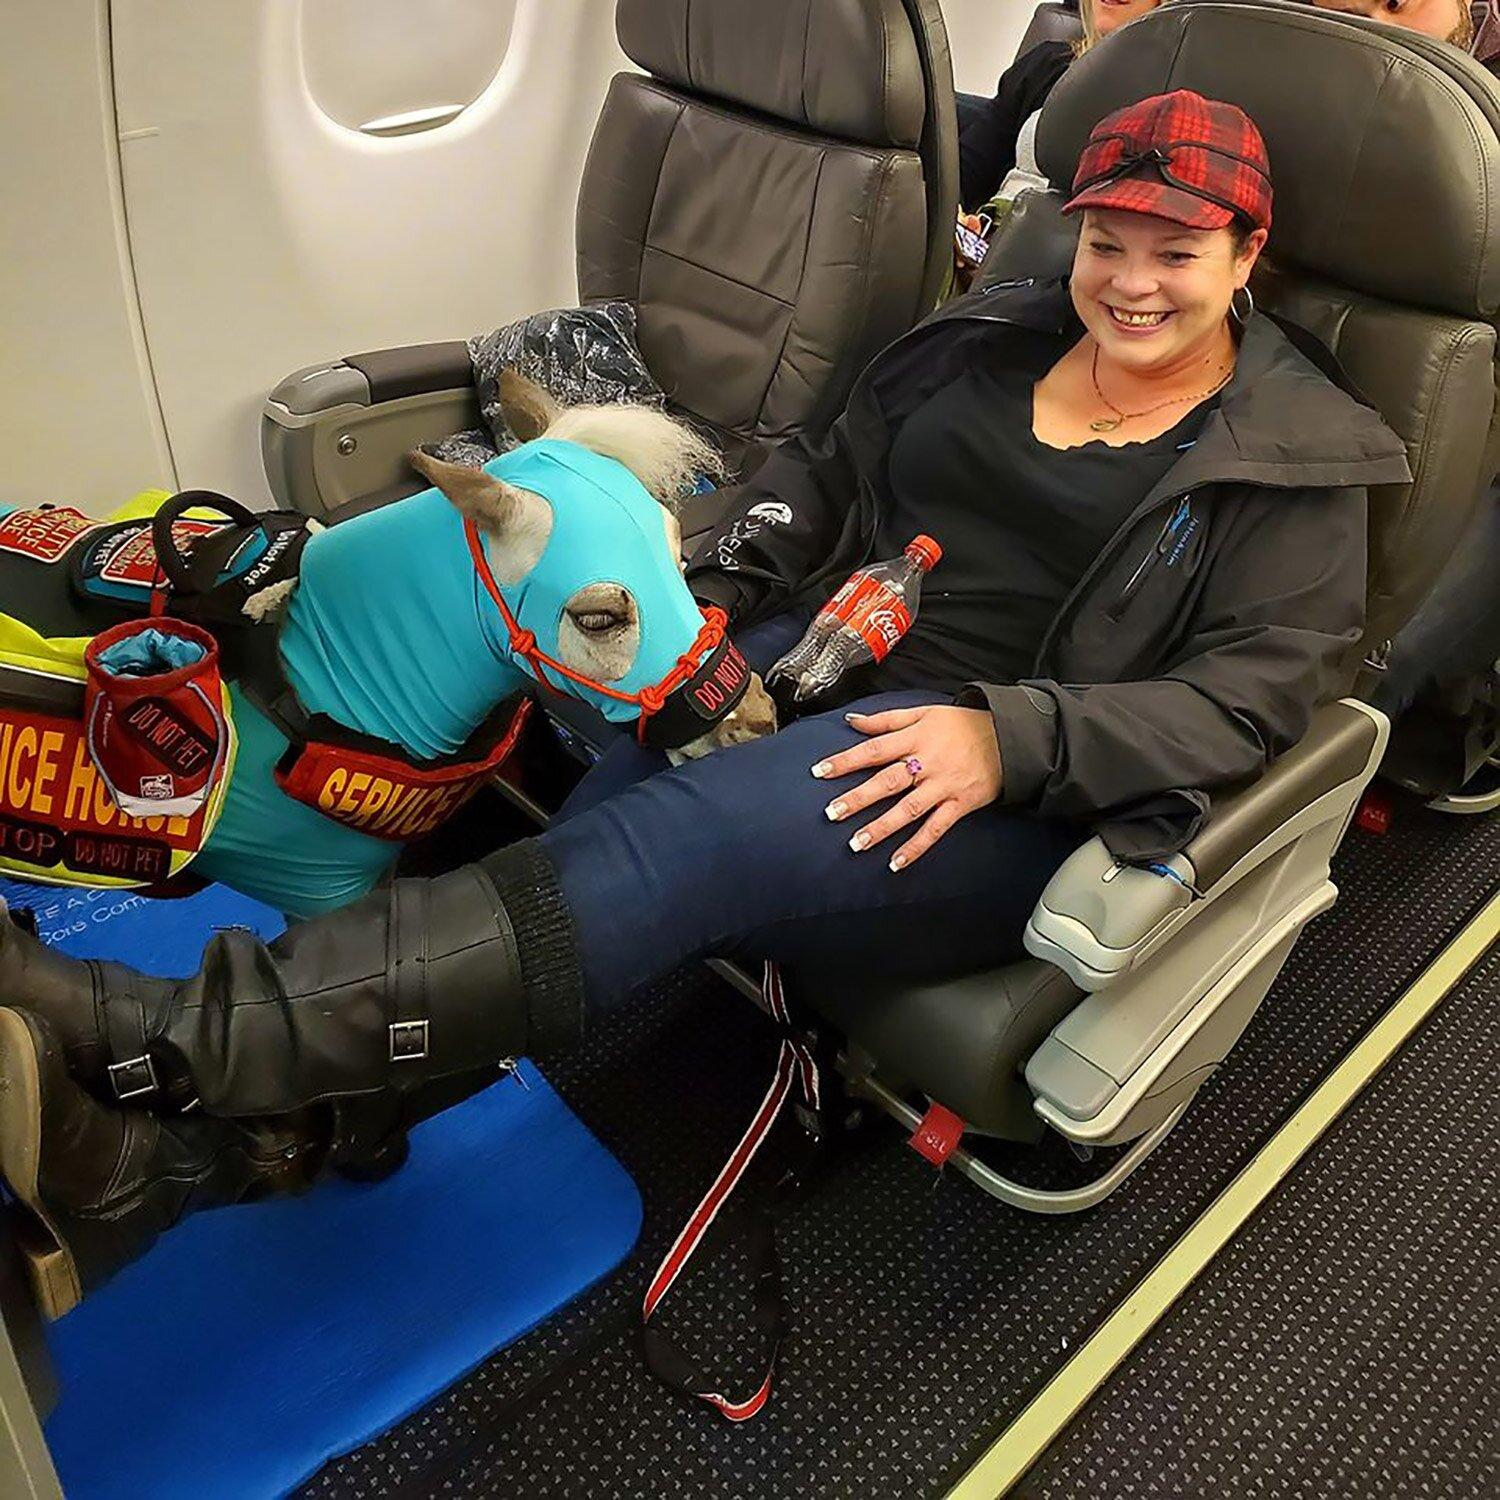 Michigan Woman Brings Miniature Horse on Plane as Her Service Animal: 'He Is So Bonded with Me'